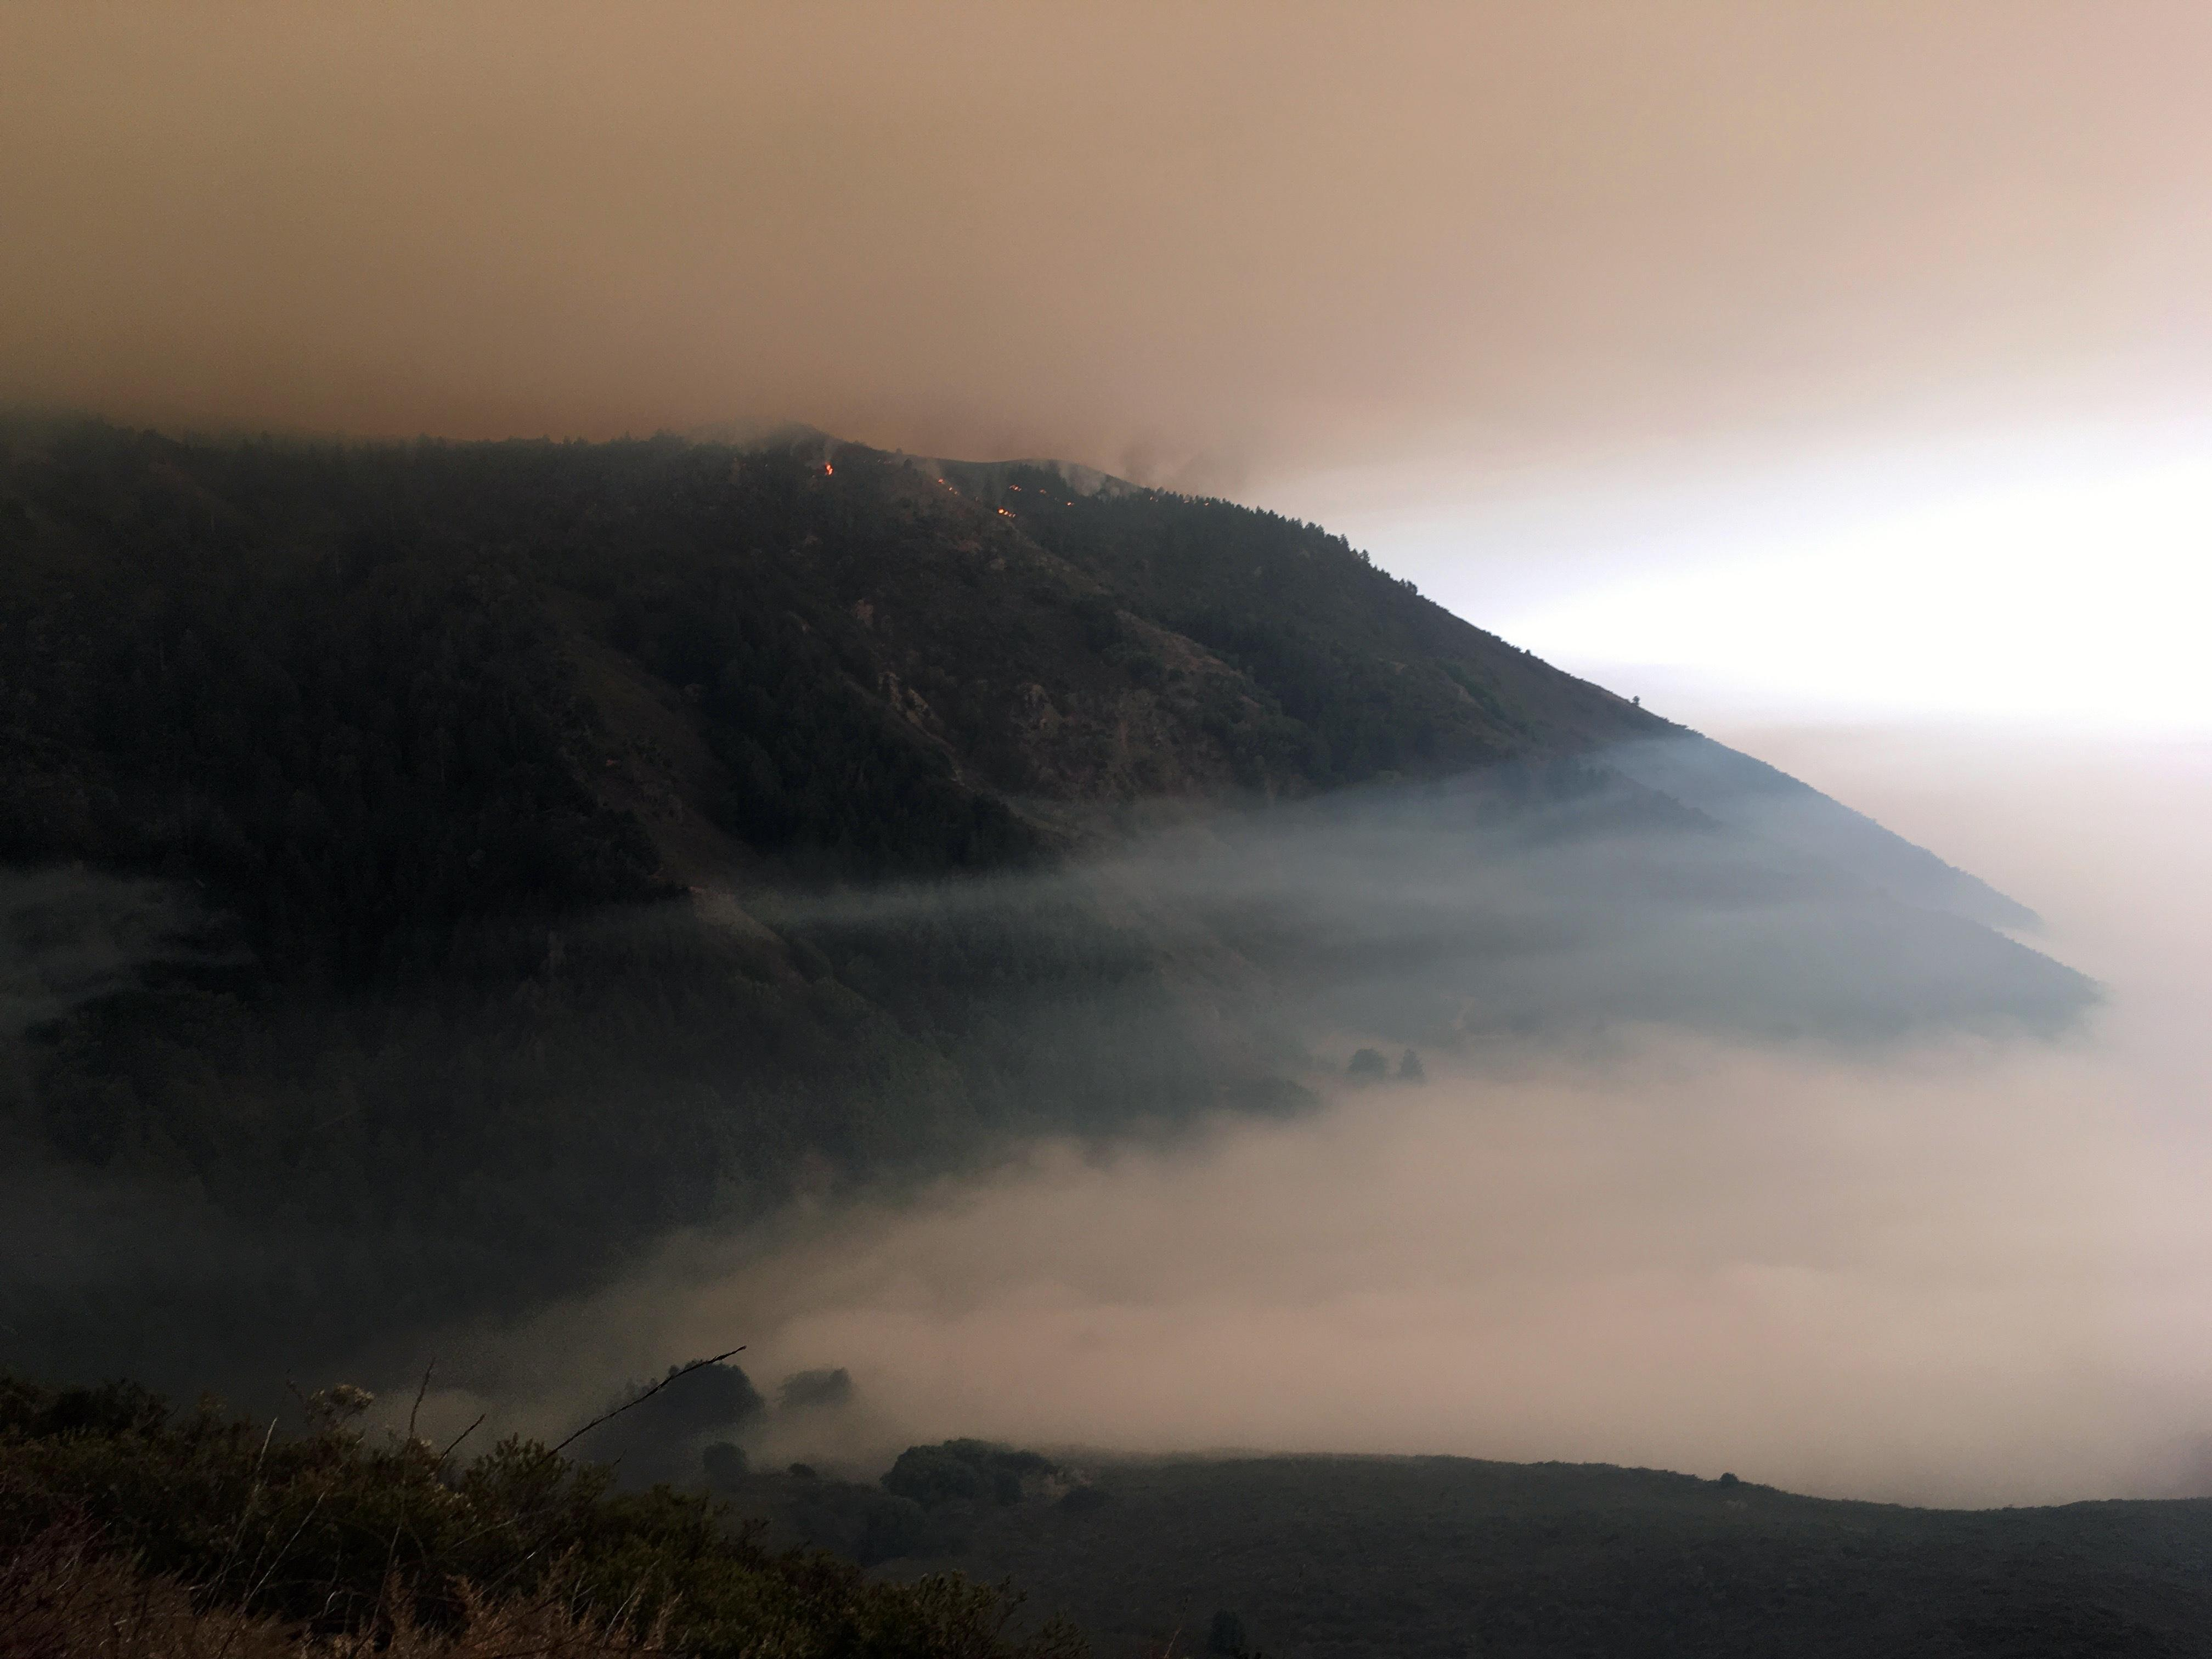 Fires dot the top of a forested ridge with the marine layer of clouds blanketing the area below.